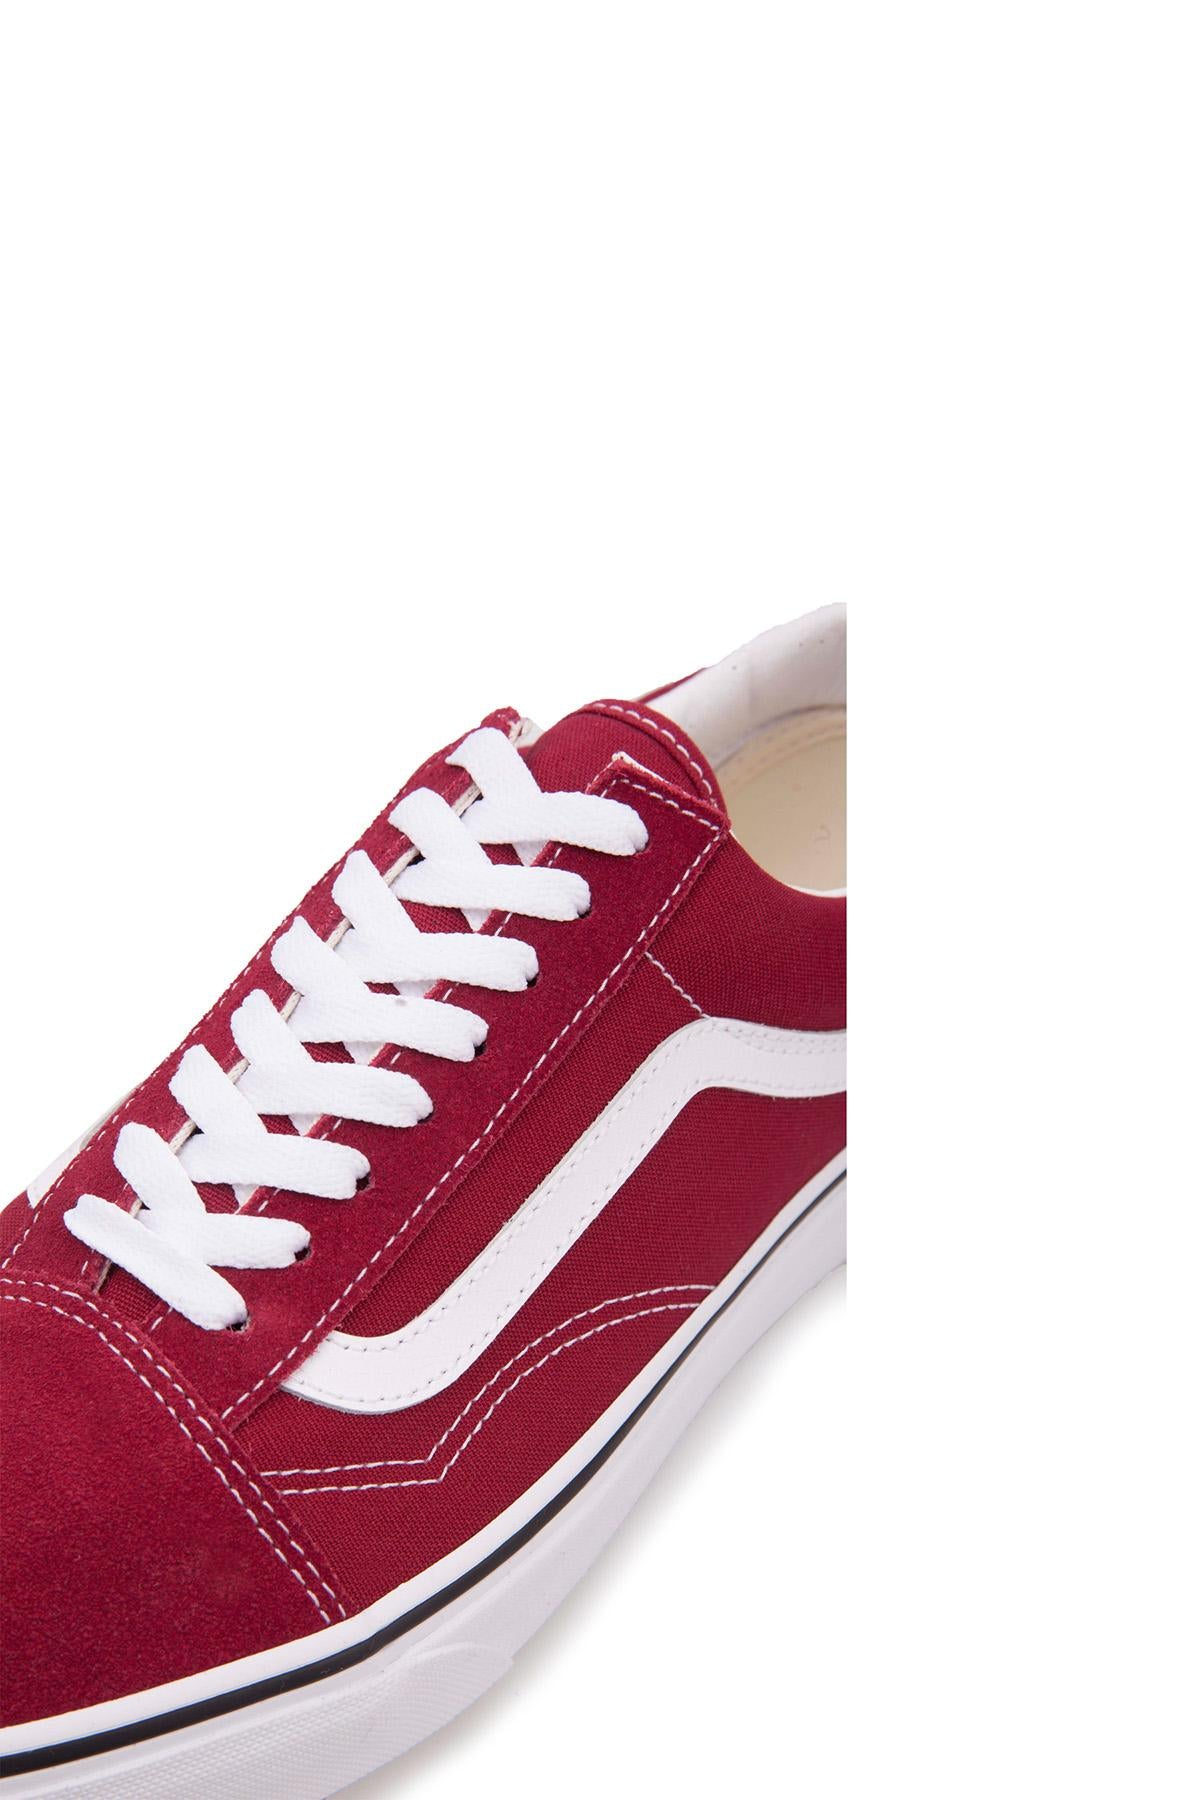 Vans Shoes MALE SHOES VN0A38G1VG41 – mountaingreen99